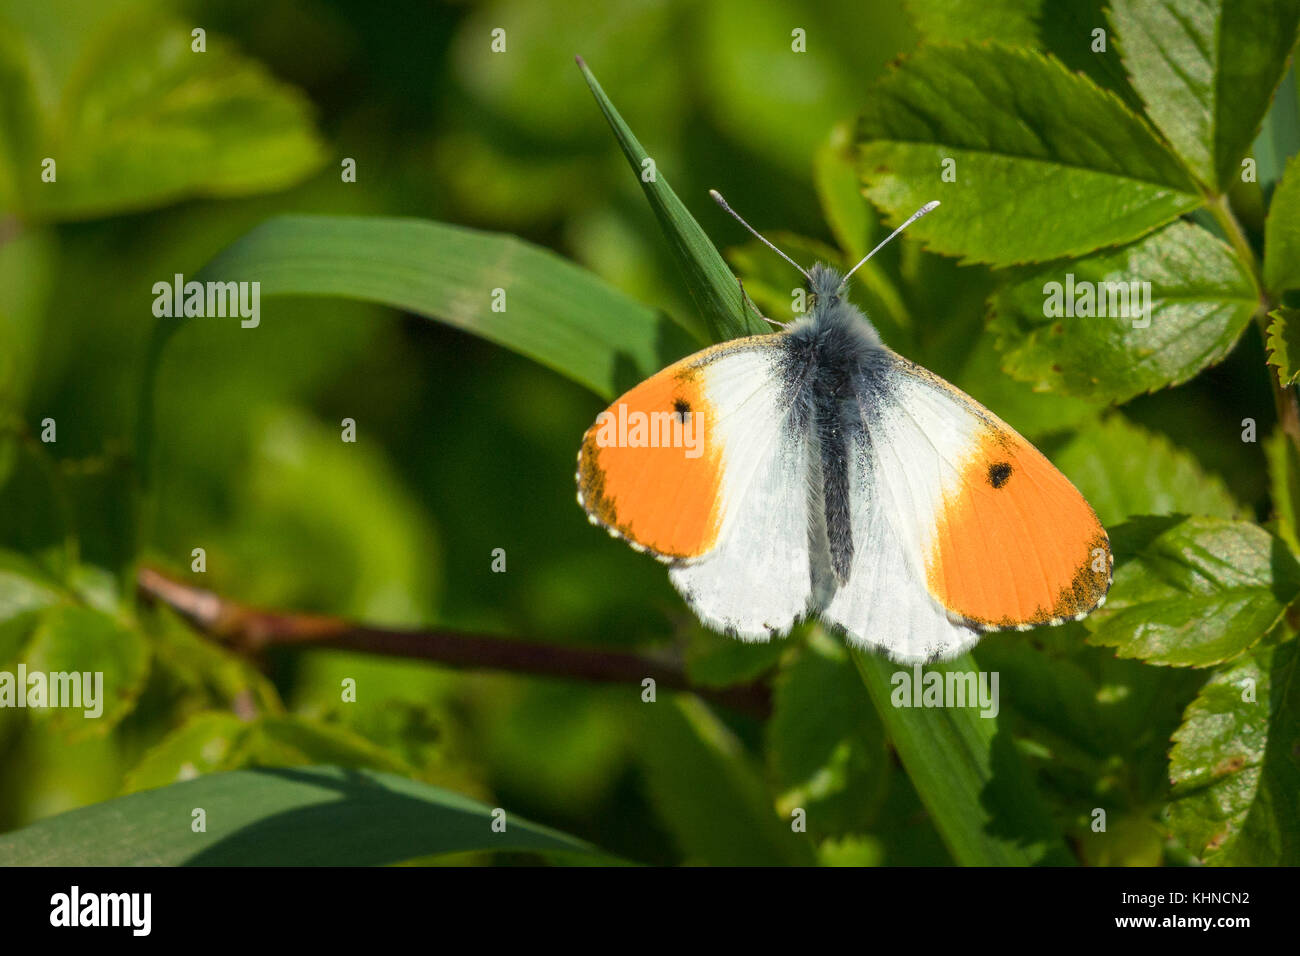 Orange tip butterfly on a green leaf in a garden at springtime in the sun - Stock Image